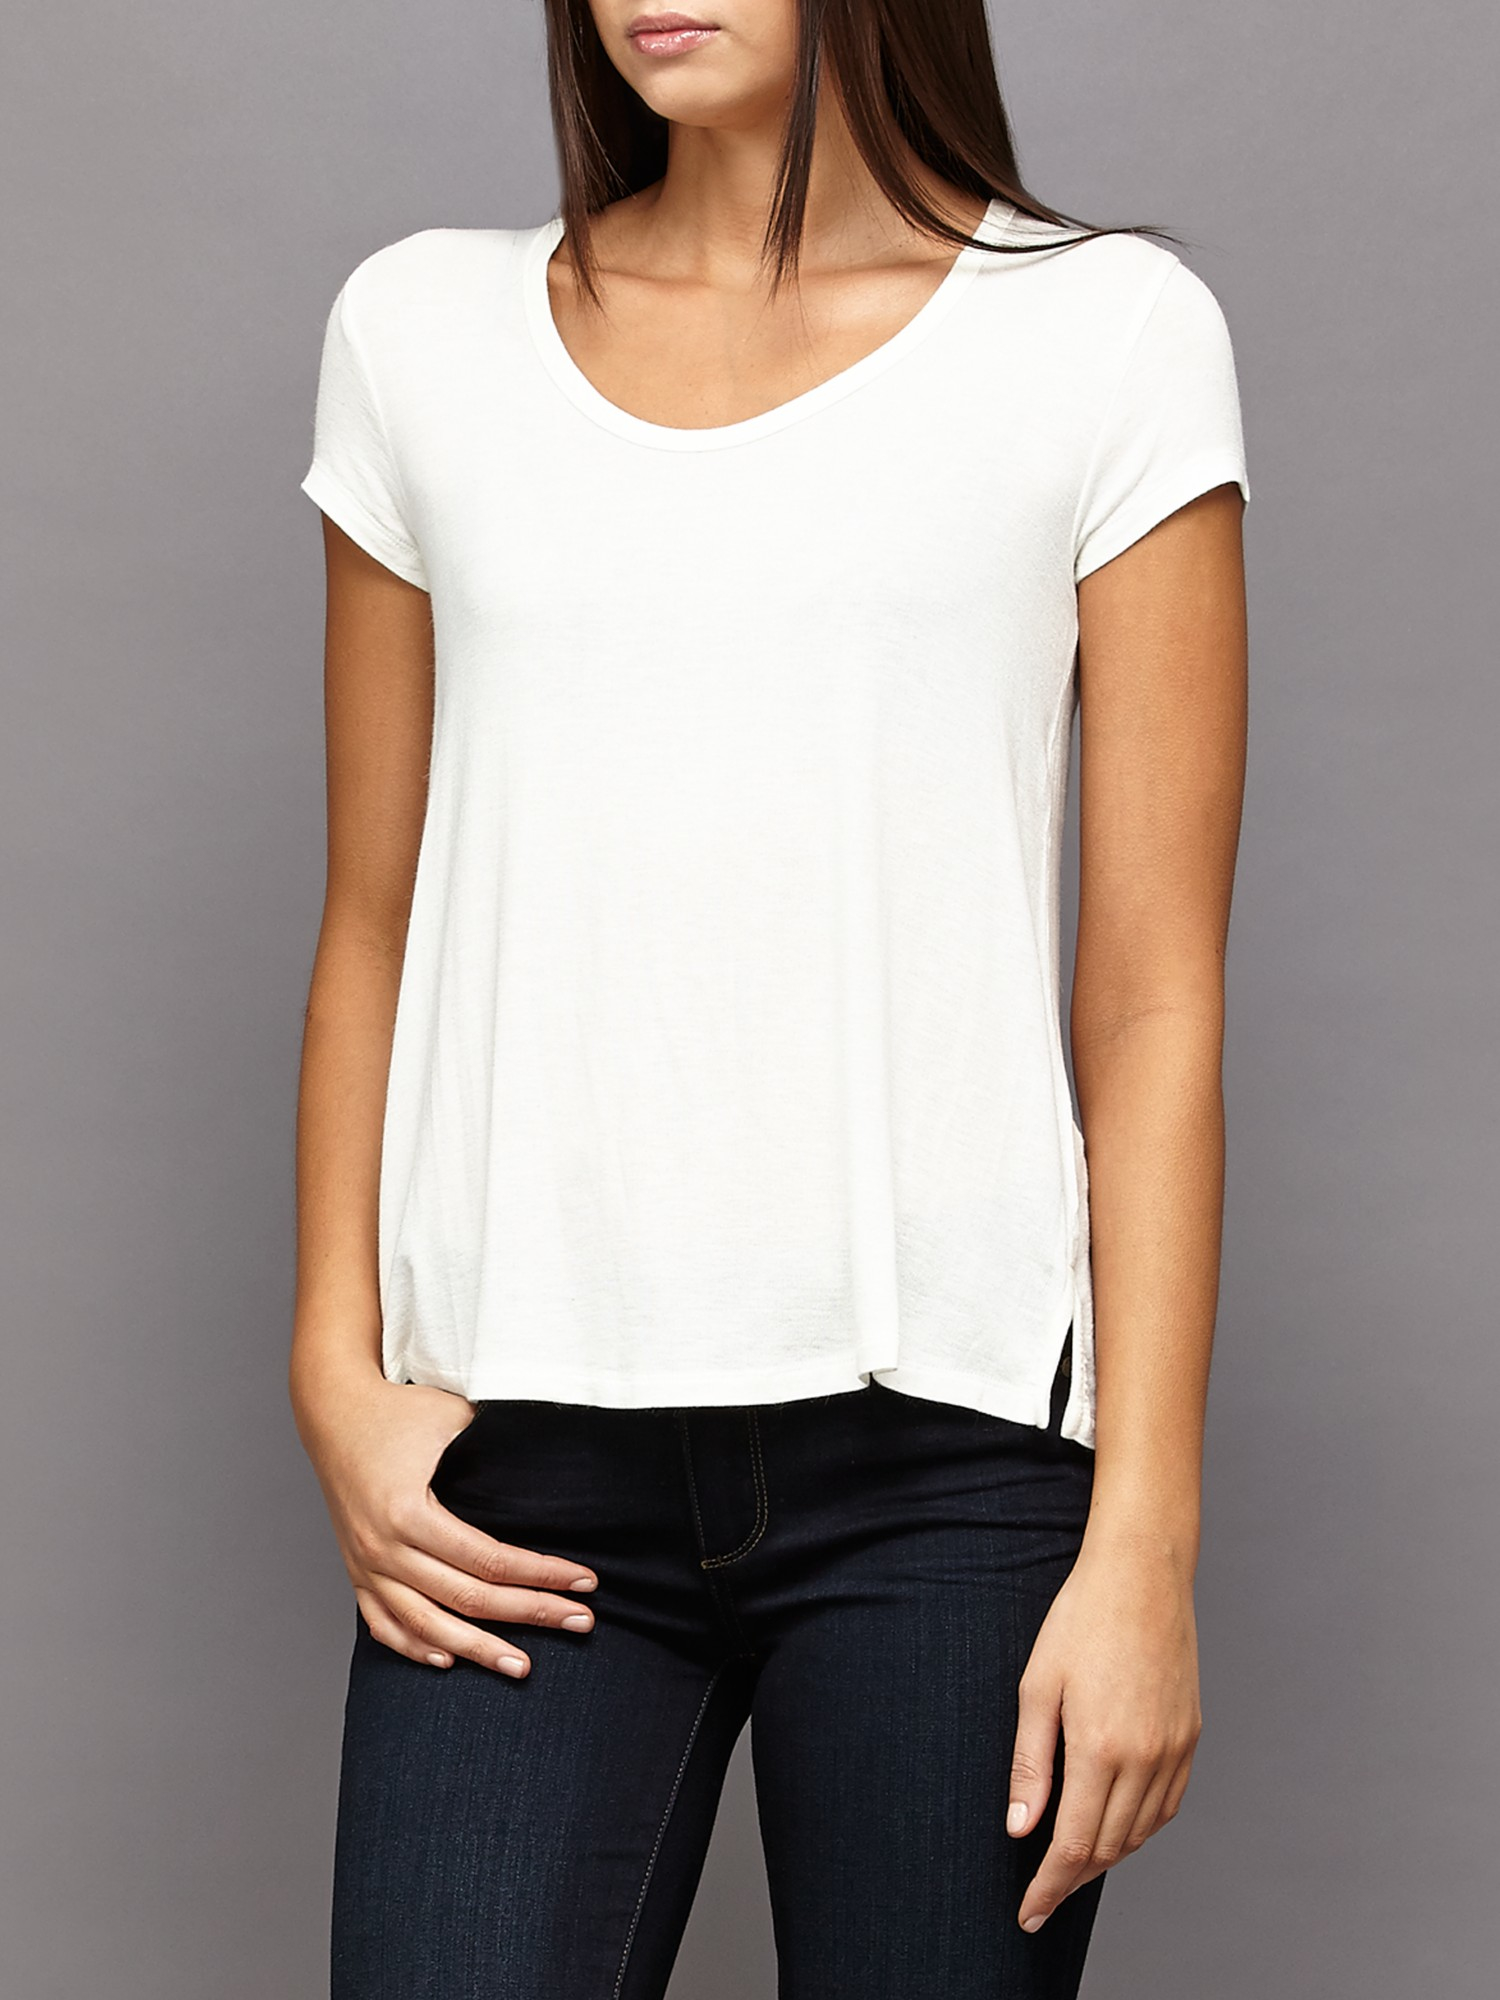 american vintage moly well t shirt in white lyst